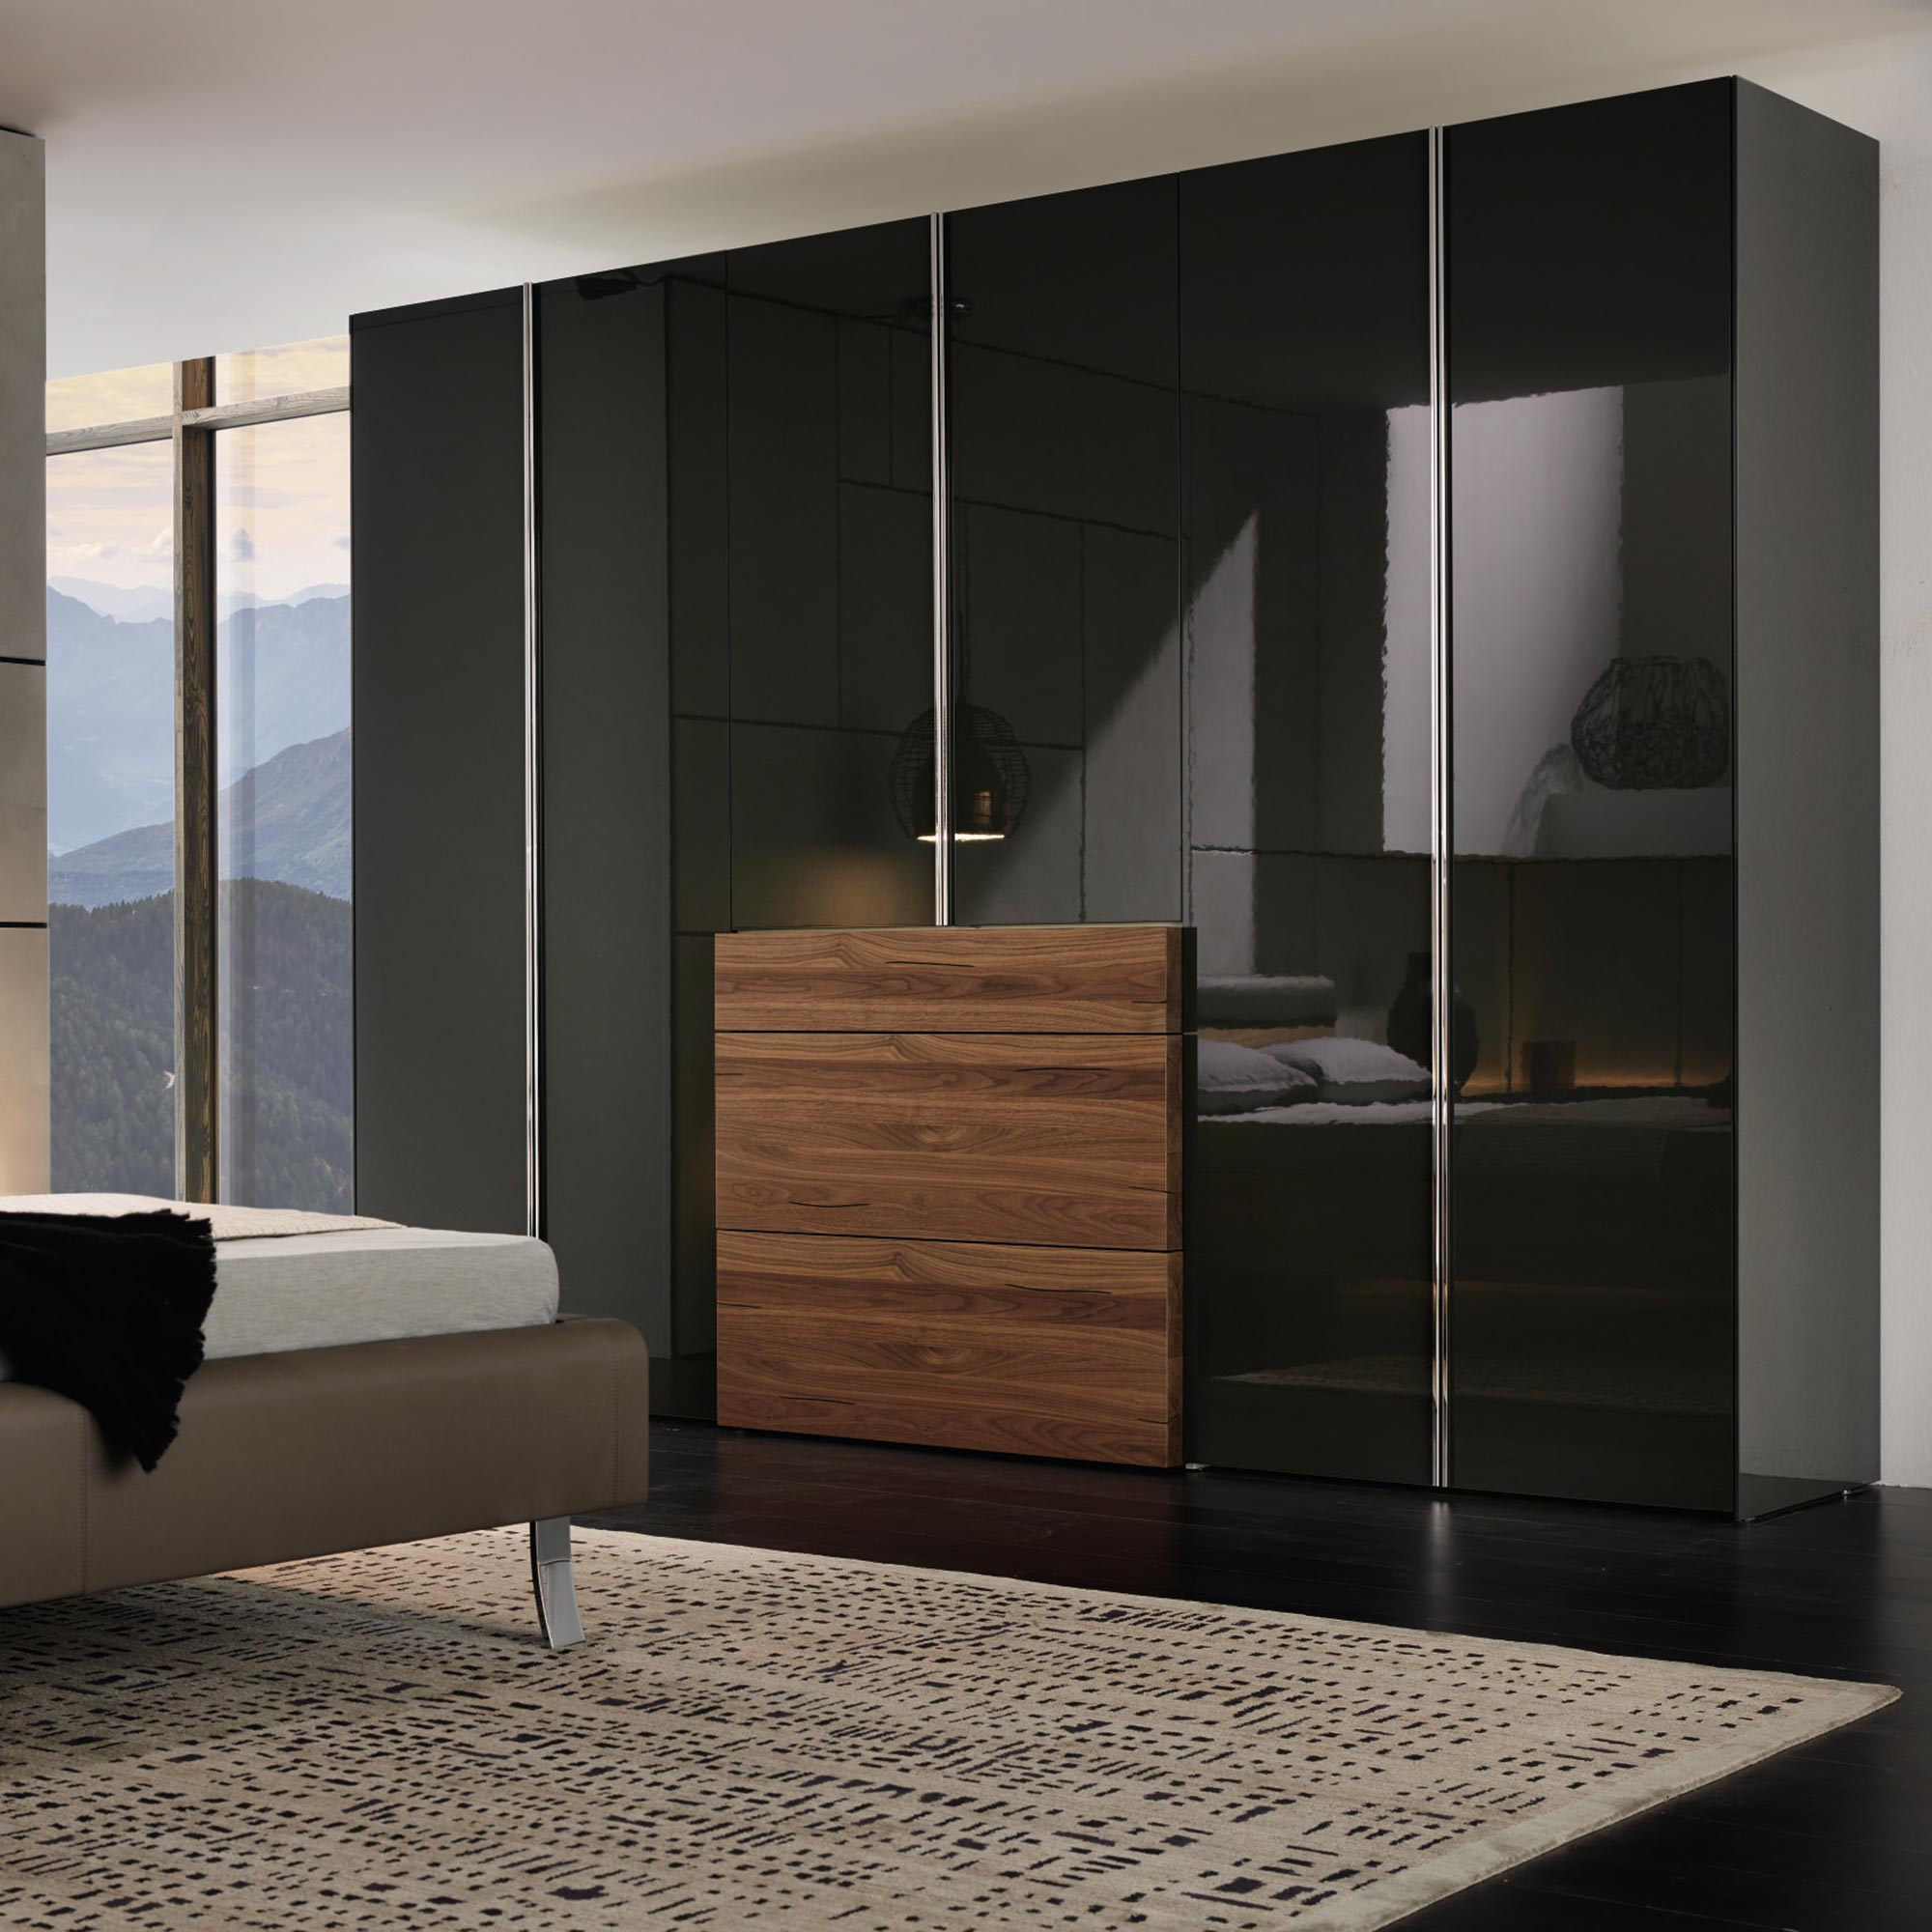 gentis schrank in lackschwarz von h lsta m bel b r ag. Black Bedroom Furniture Sets. Home Design Ideas